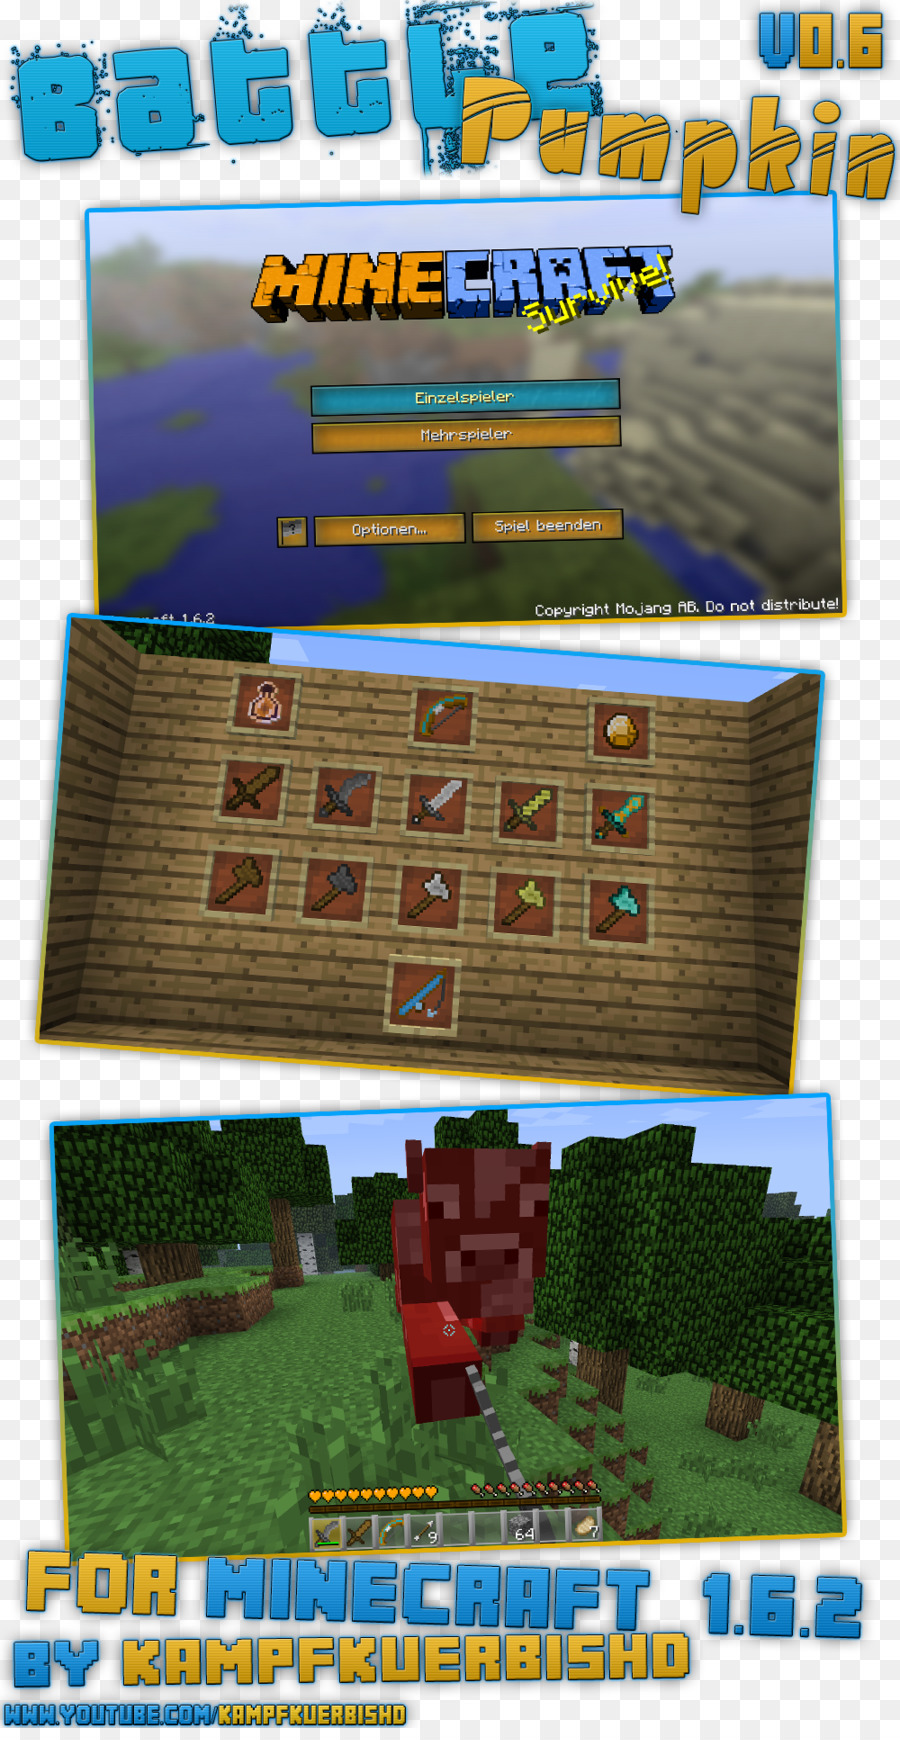 Minecraft Biome Screenshot Nigger Video Game Fadenkreuz Png - Minecraft spielen download